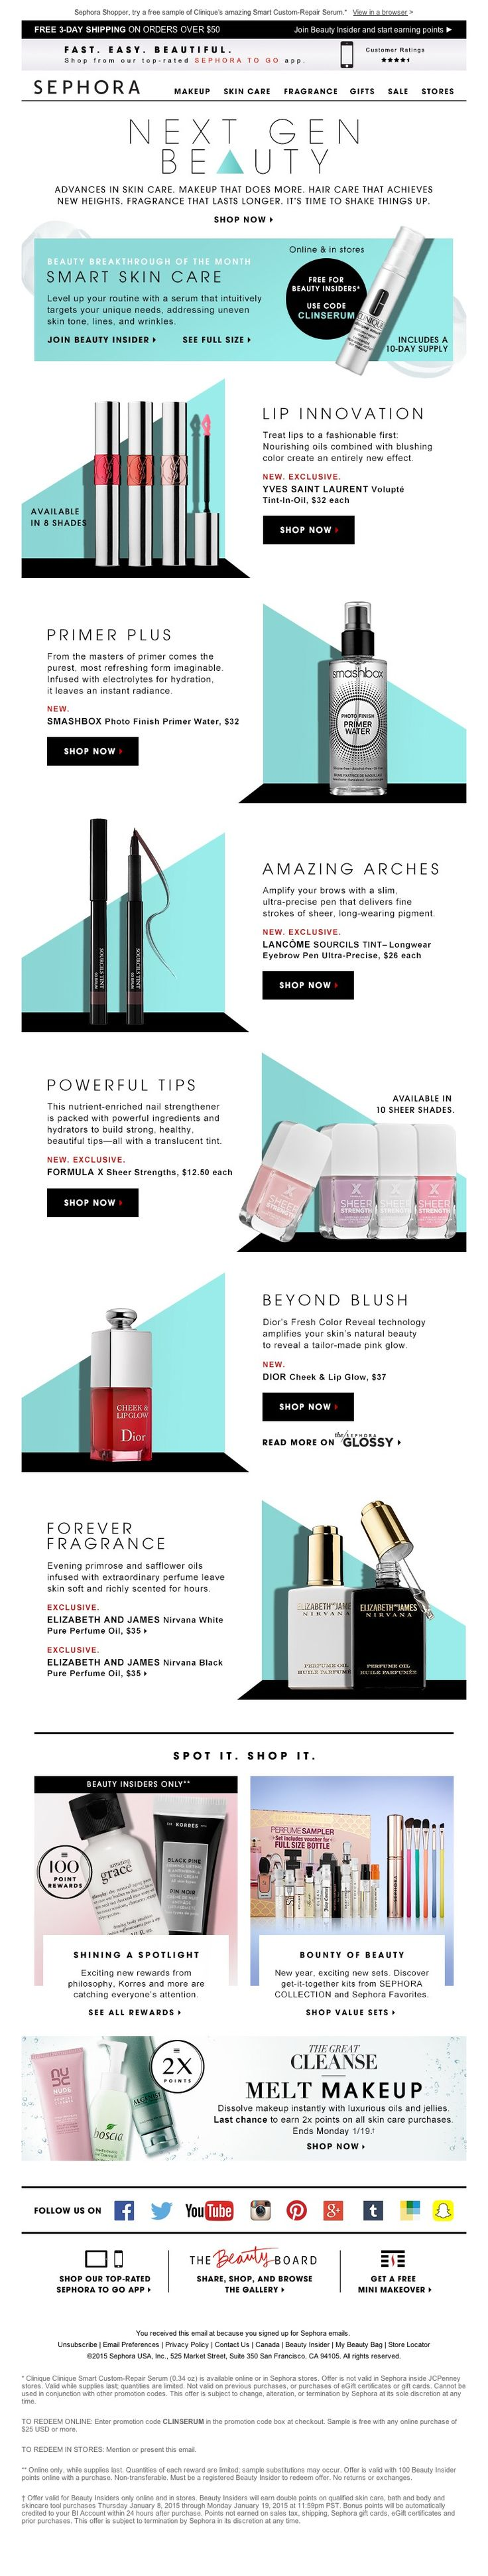 Sephora - Big breakthroughs. Huge results. 2X Points.